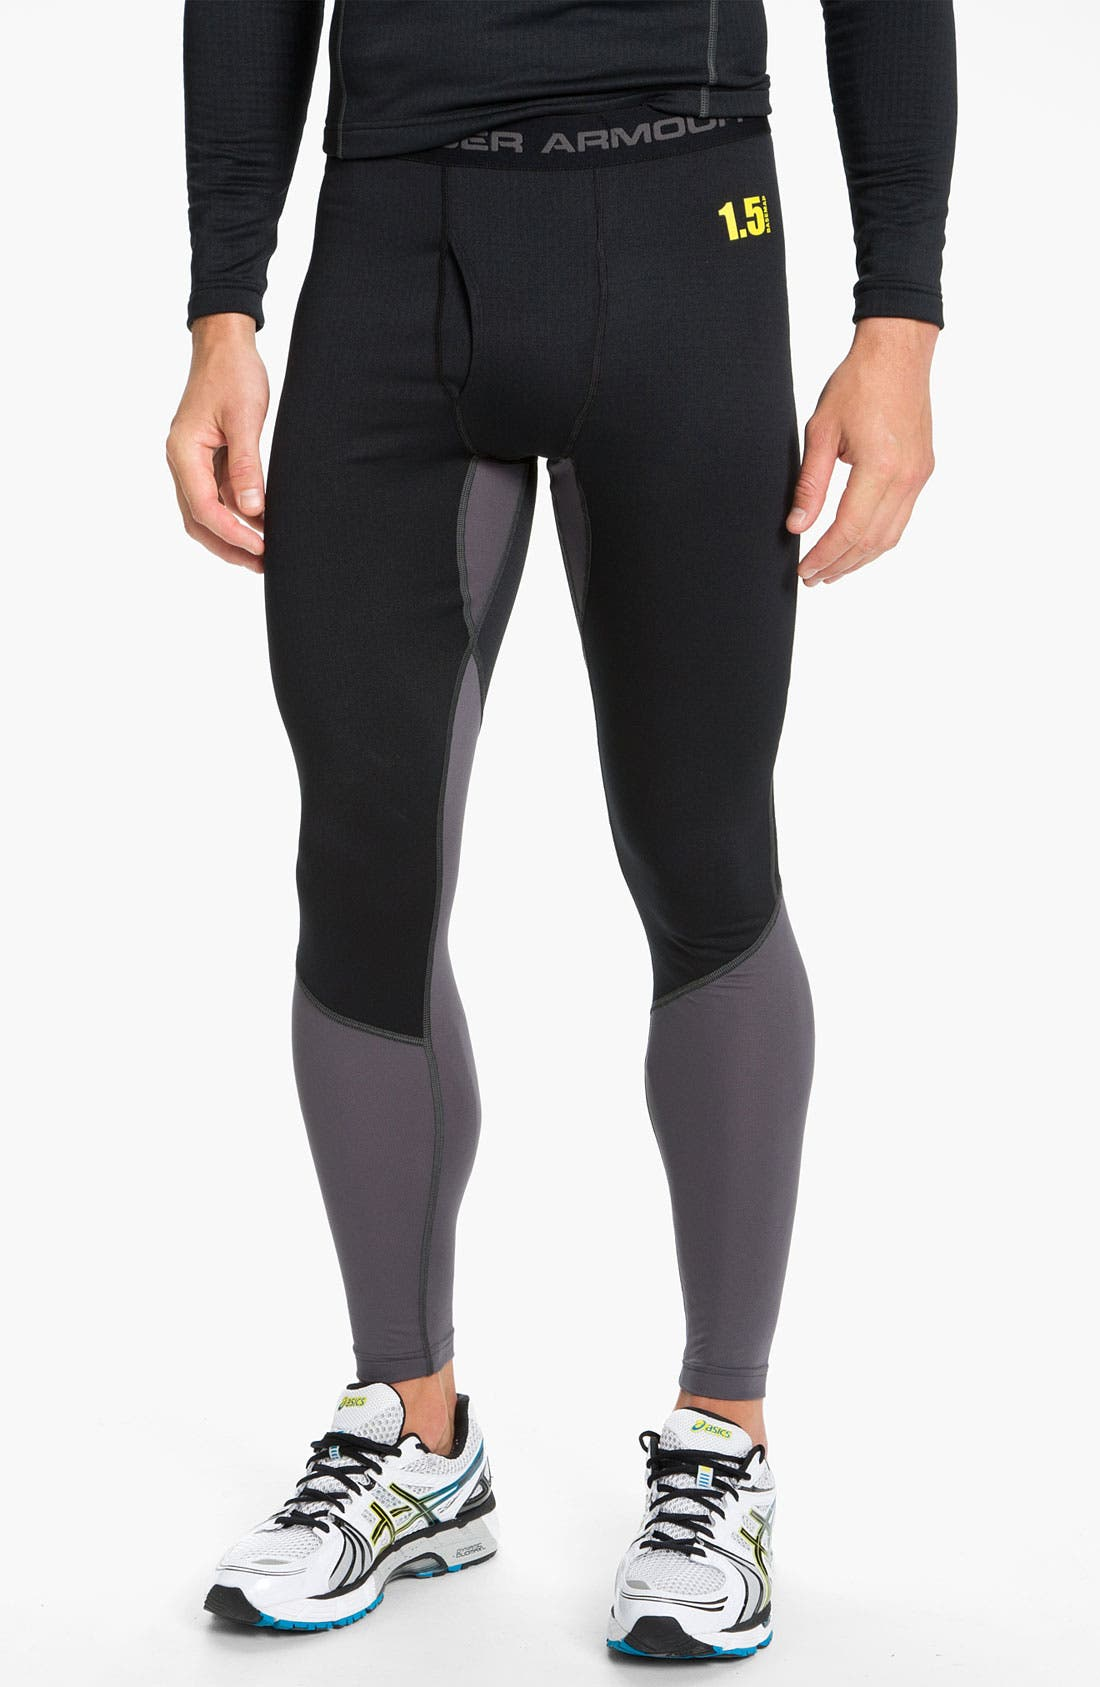 Main Image - Under Armour 'Basemap 1.5' Leggings (Online Exclusive)